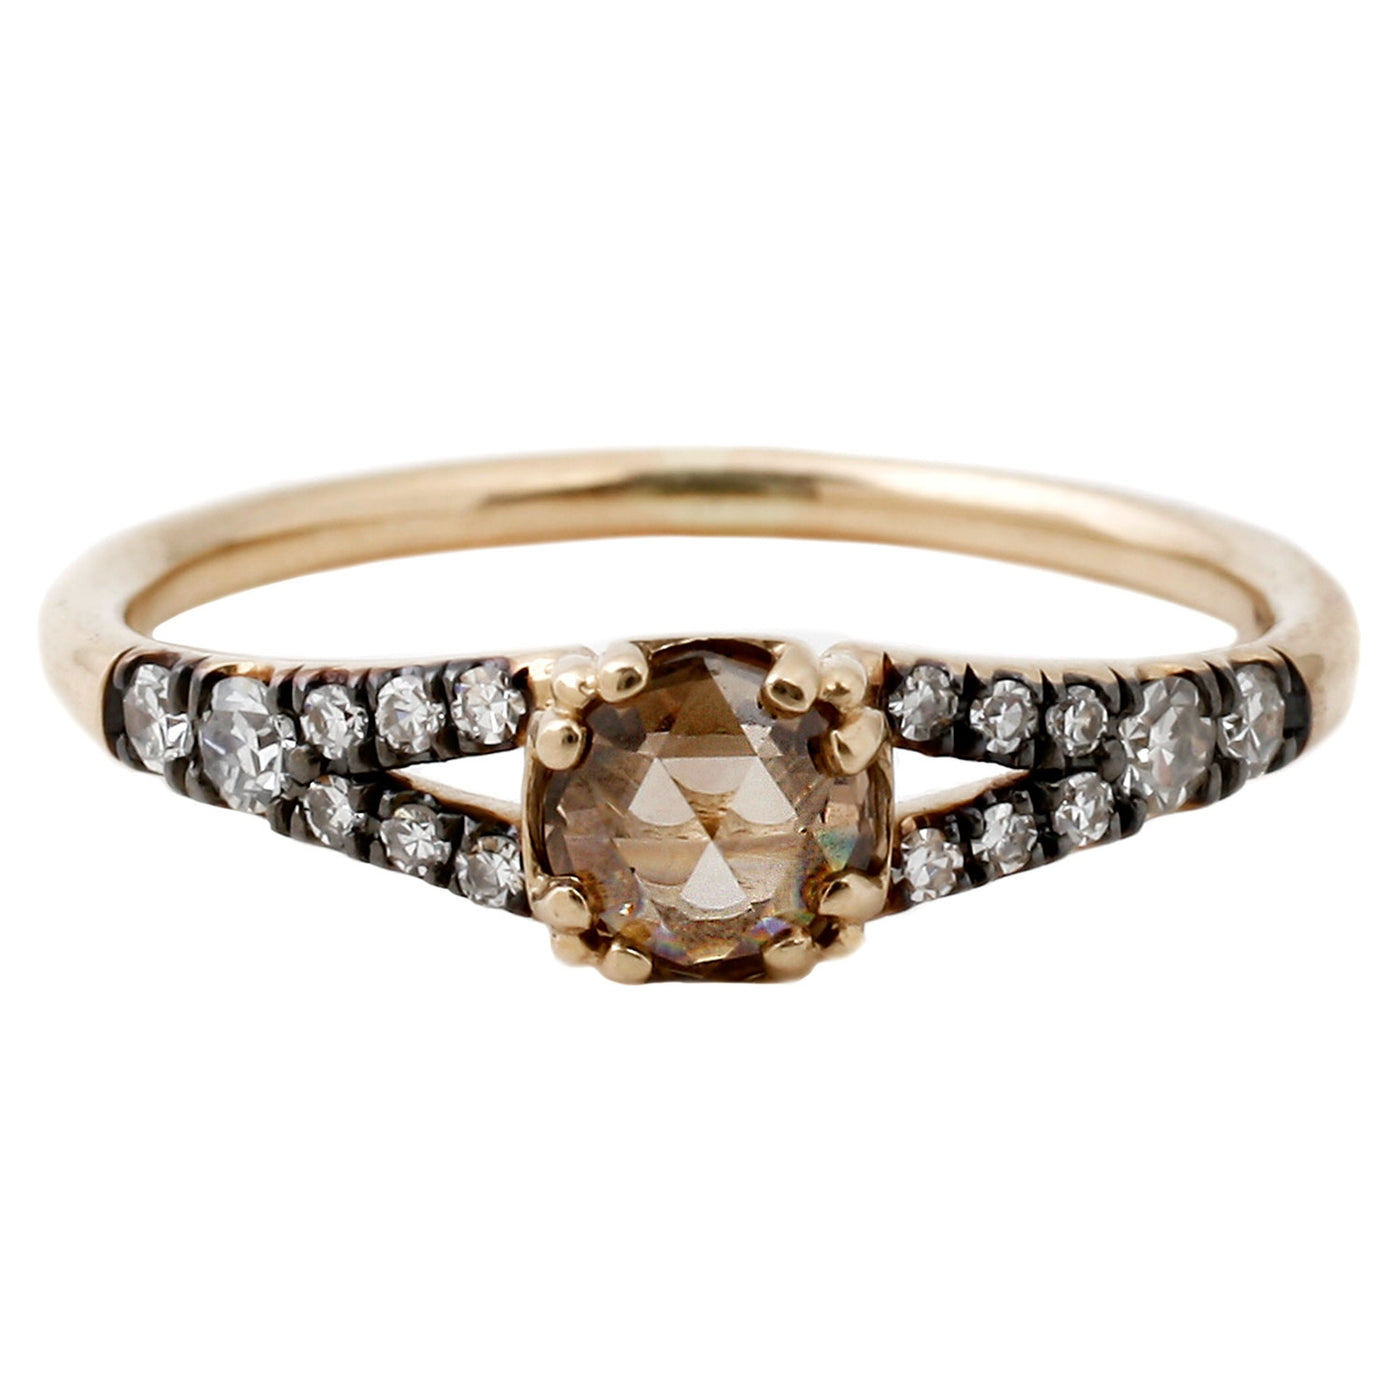 ManiaMania Devotion Solitaire Ring